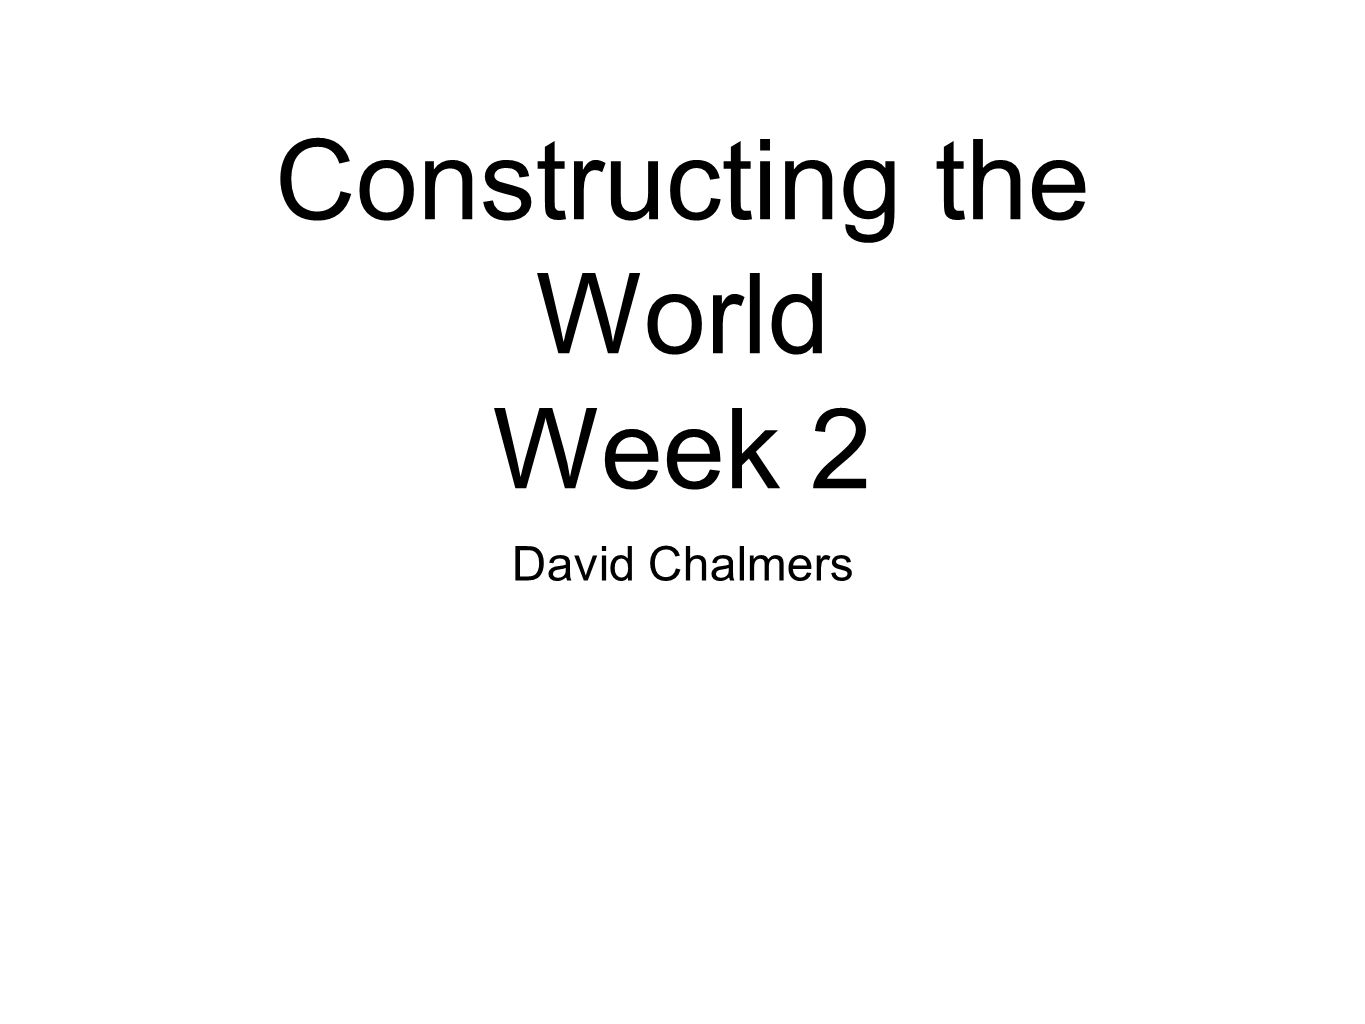 Constructing the World Week 2 David Chalmers